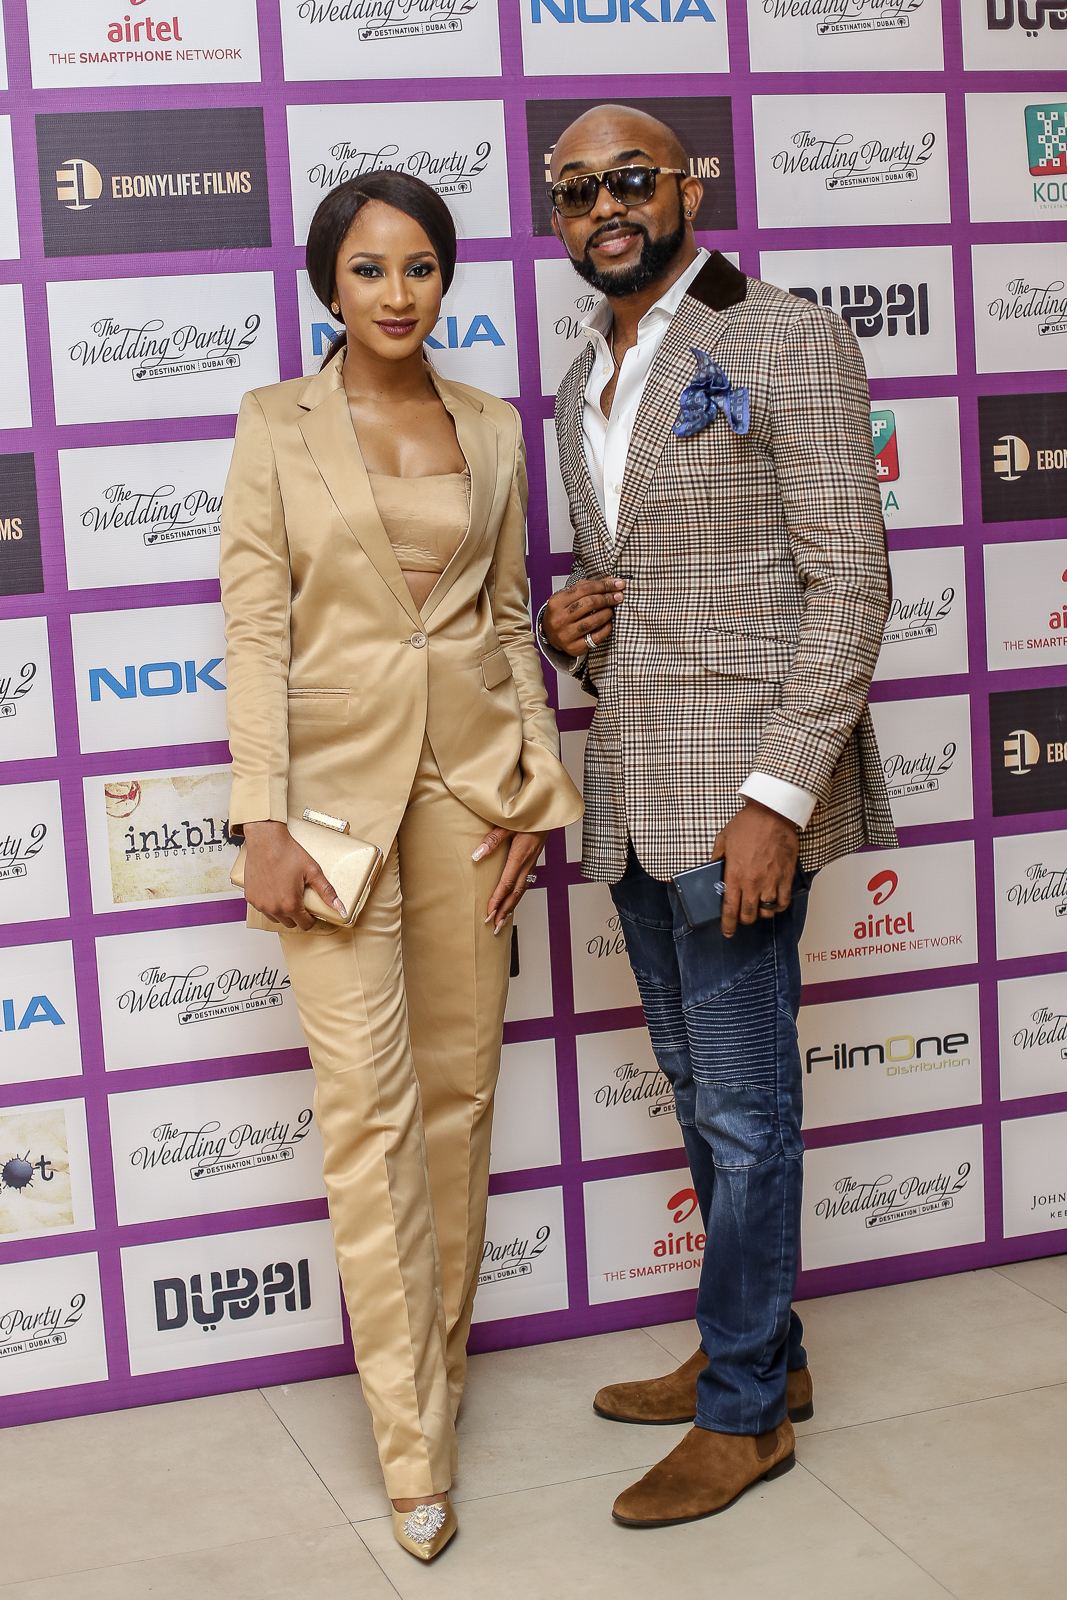 Adesua  Banky W1 - Highlights From The Early Screening Of The Wedding Party 2